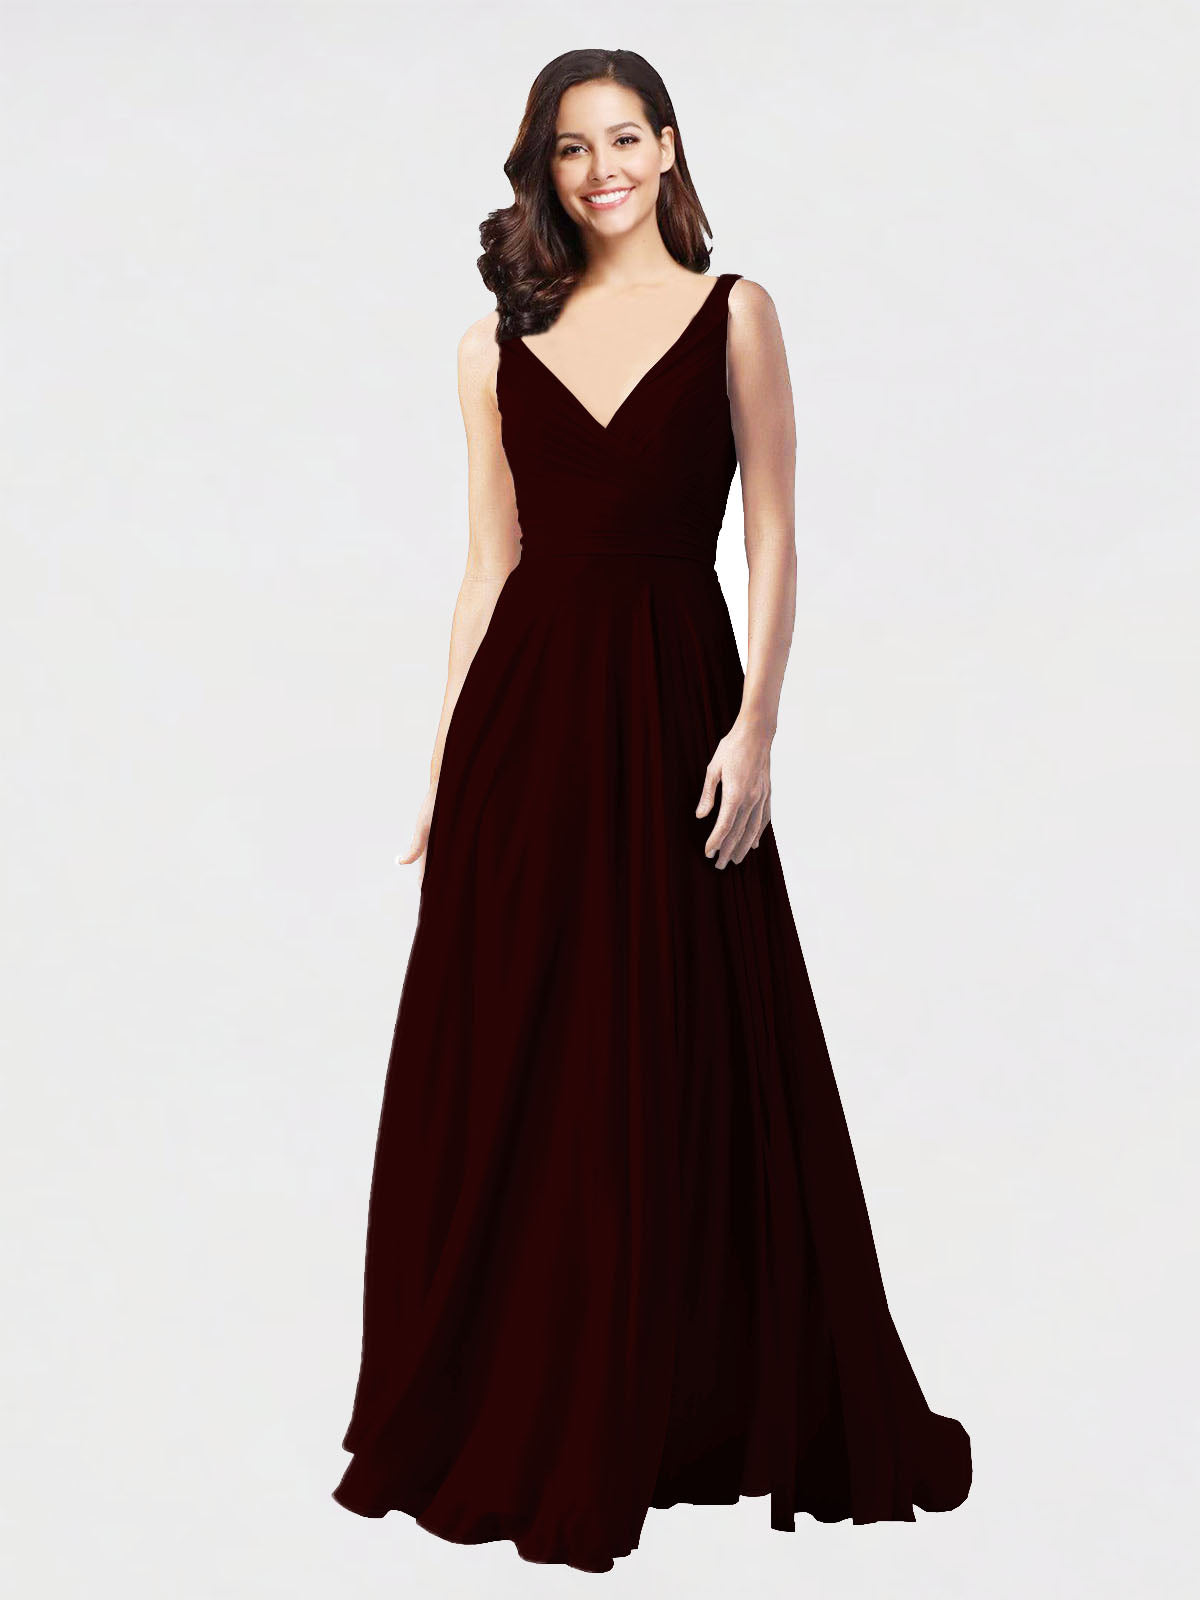 Long A-Line V-Neck Sleeveless Burgundy Gold Chiffon Bridesmaid Dress Bernice